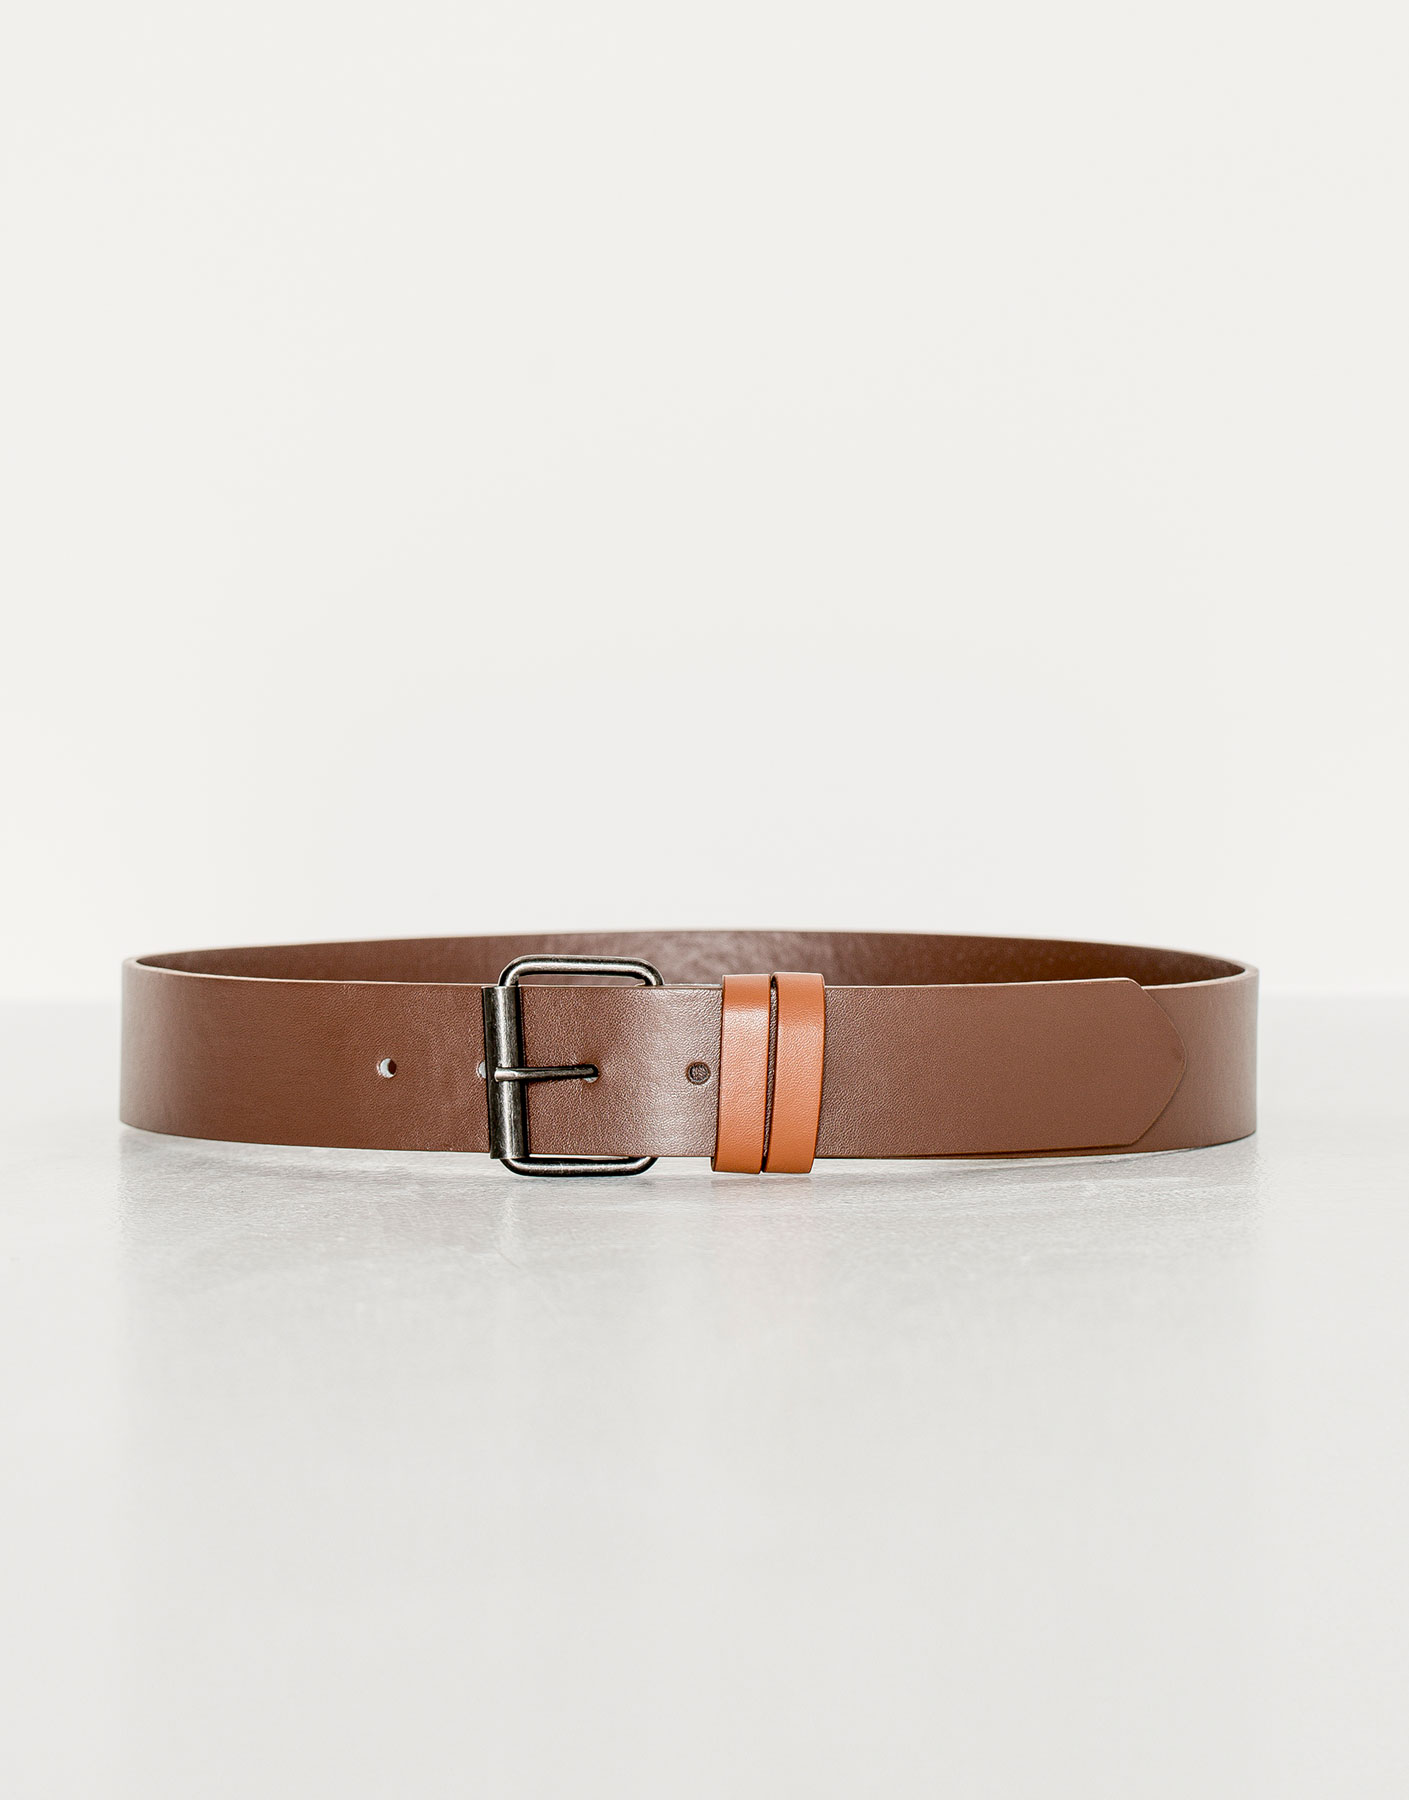 Double belt loop belt